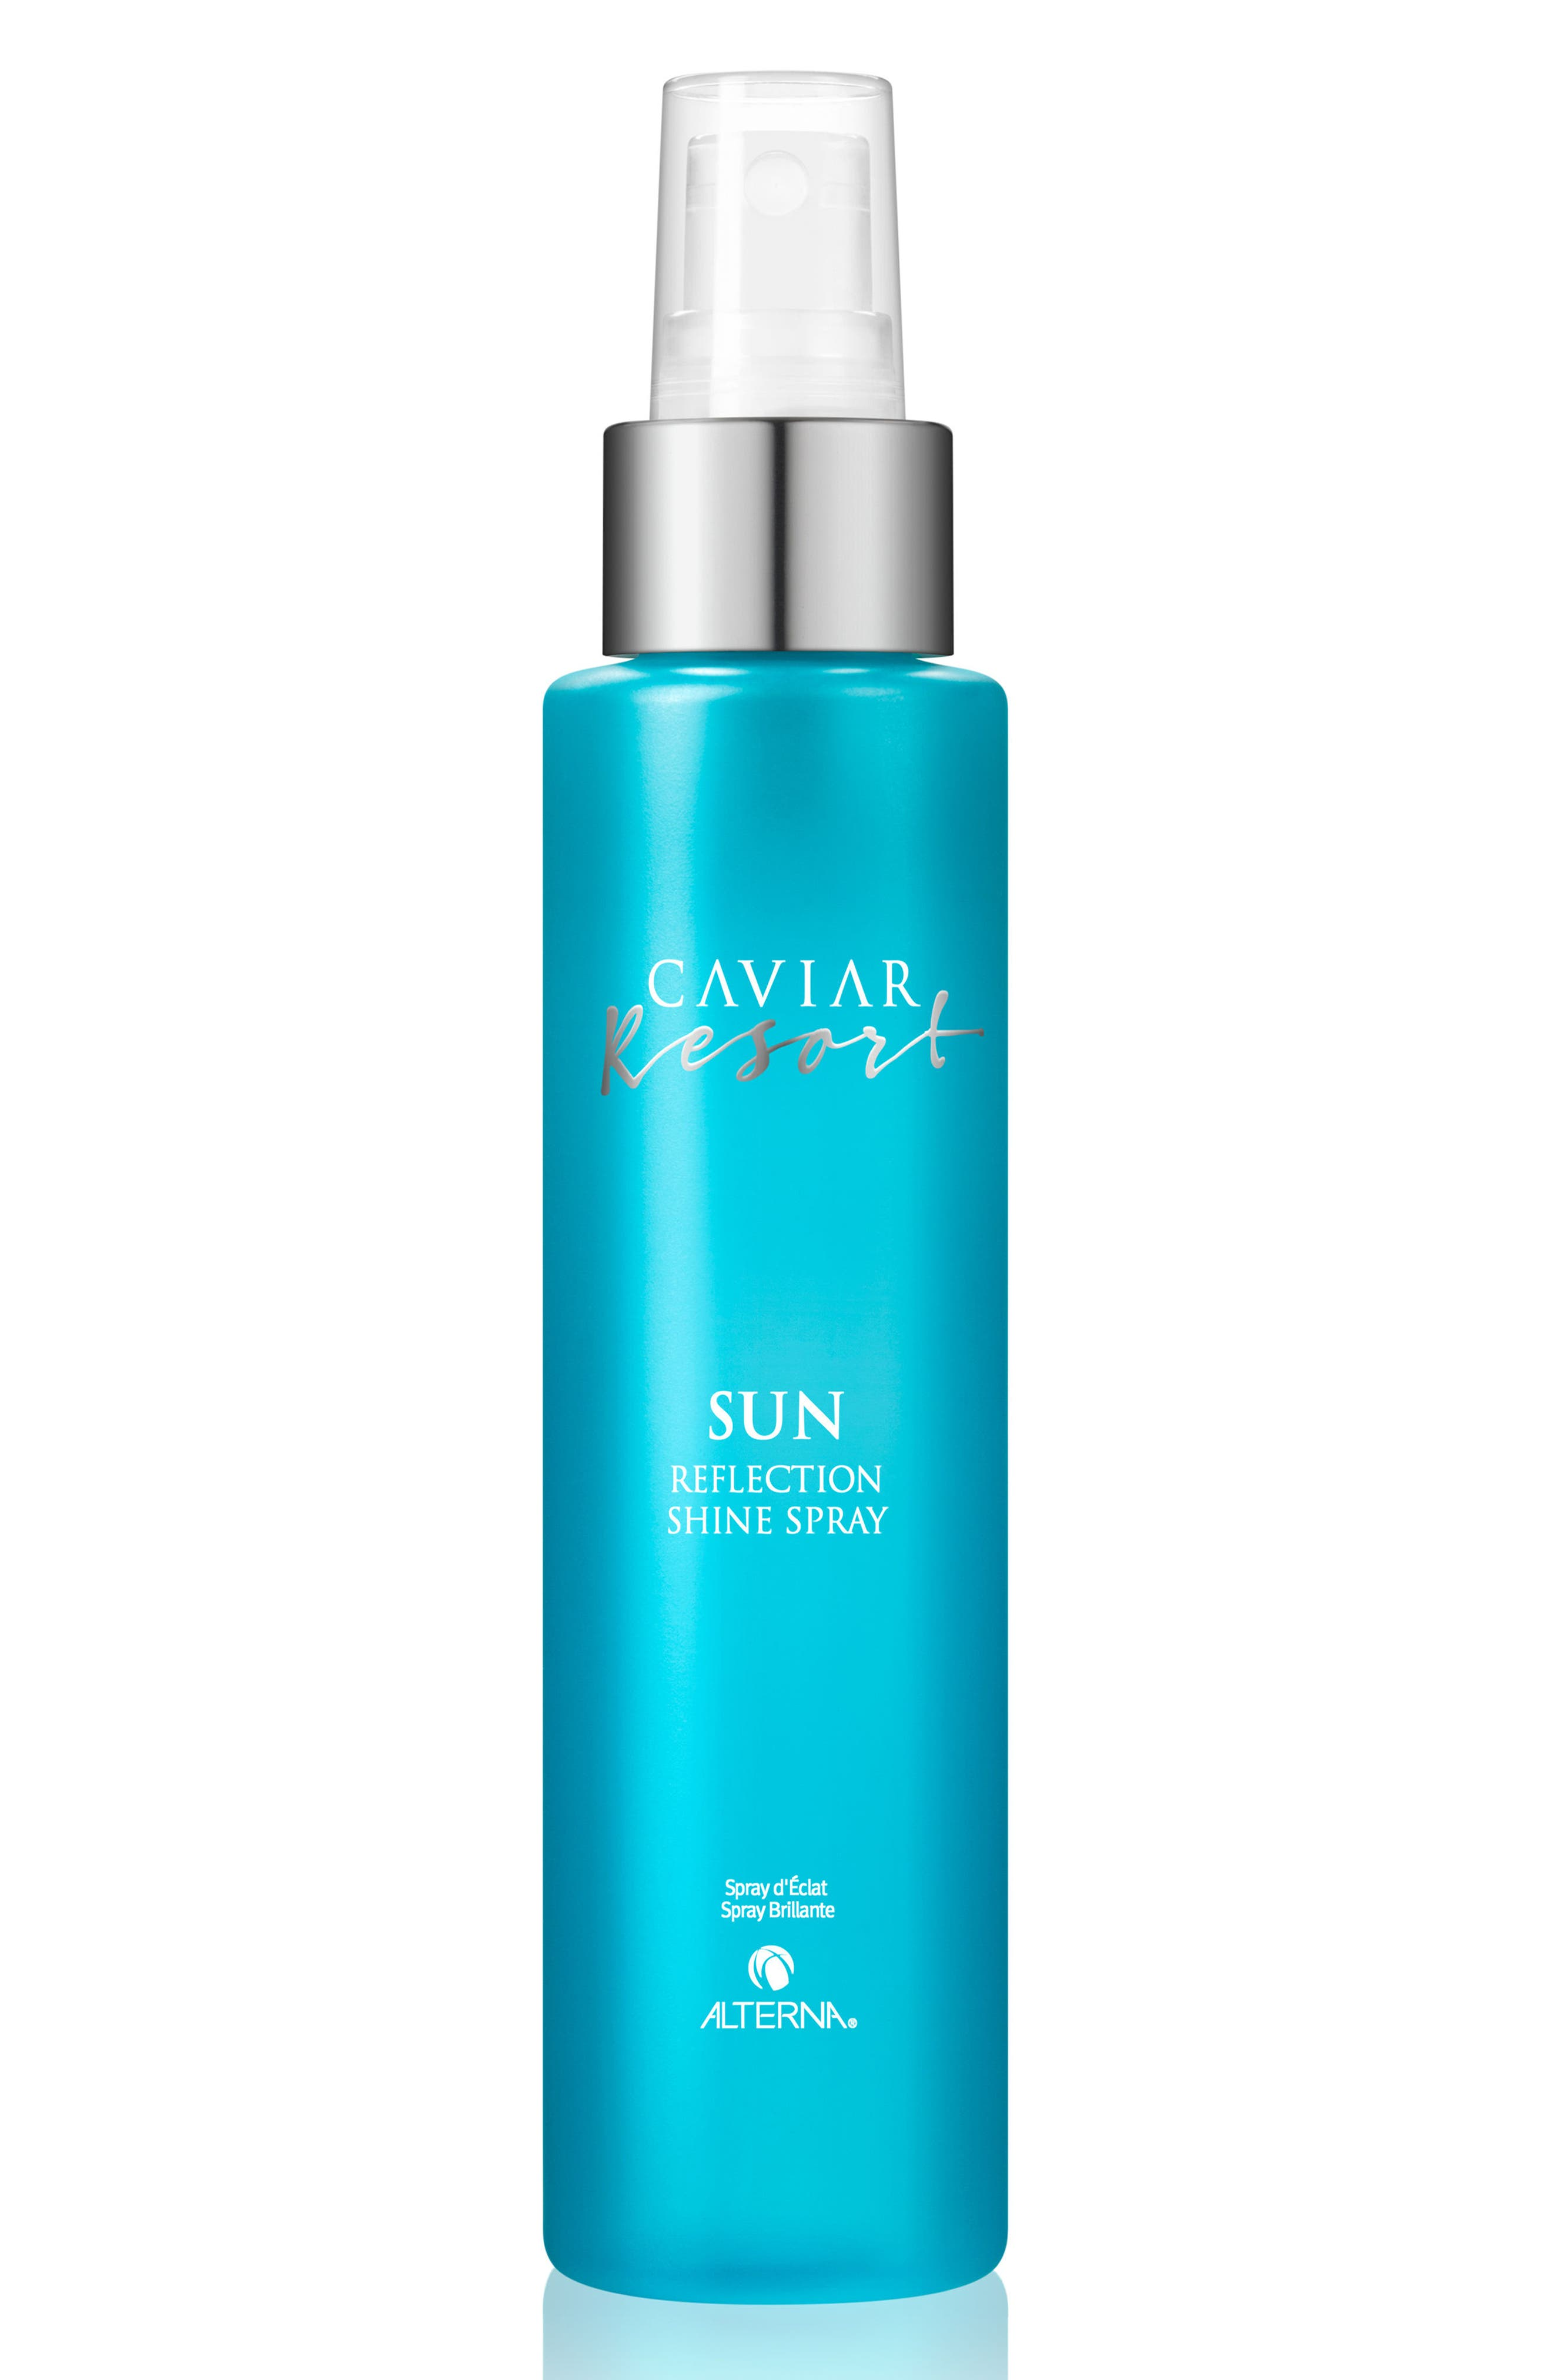 Caviar Resort Sun Reflection Shine Spray,                             Main thumbnail 1, color,                             NO COLOR